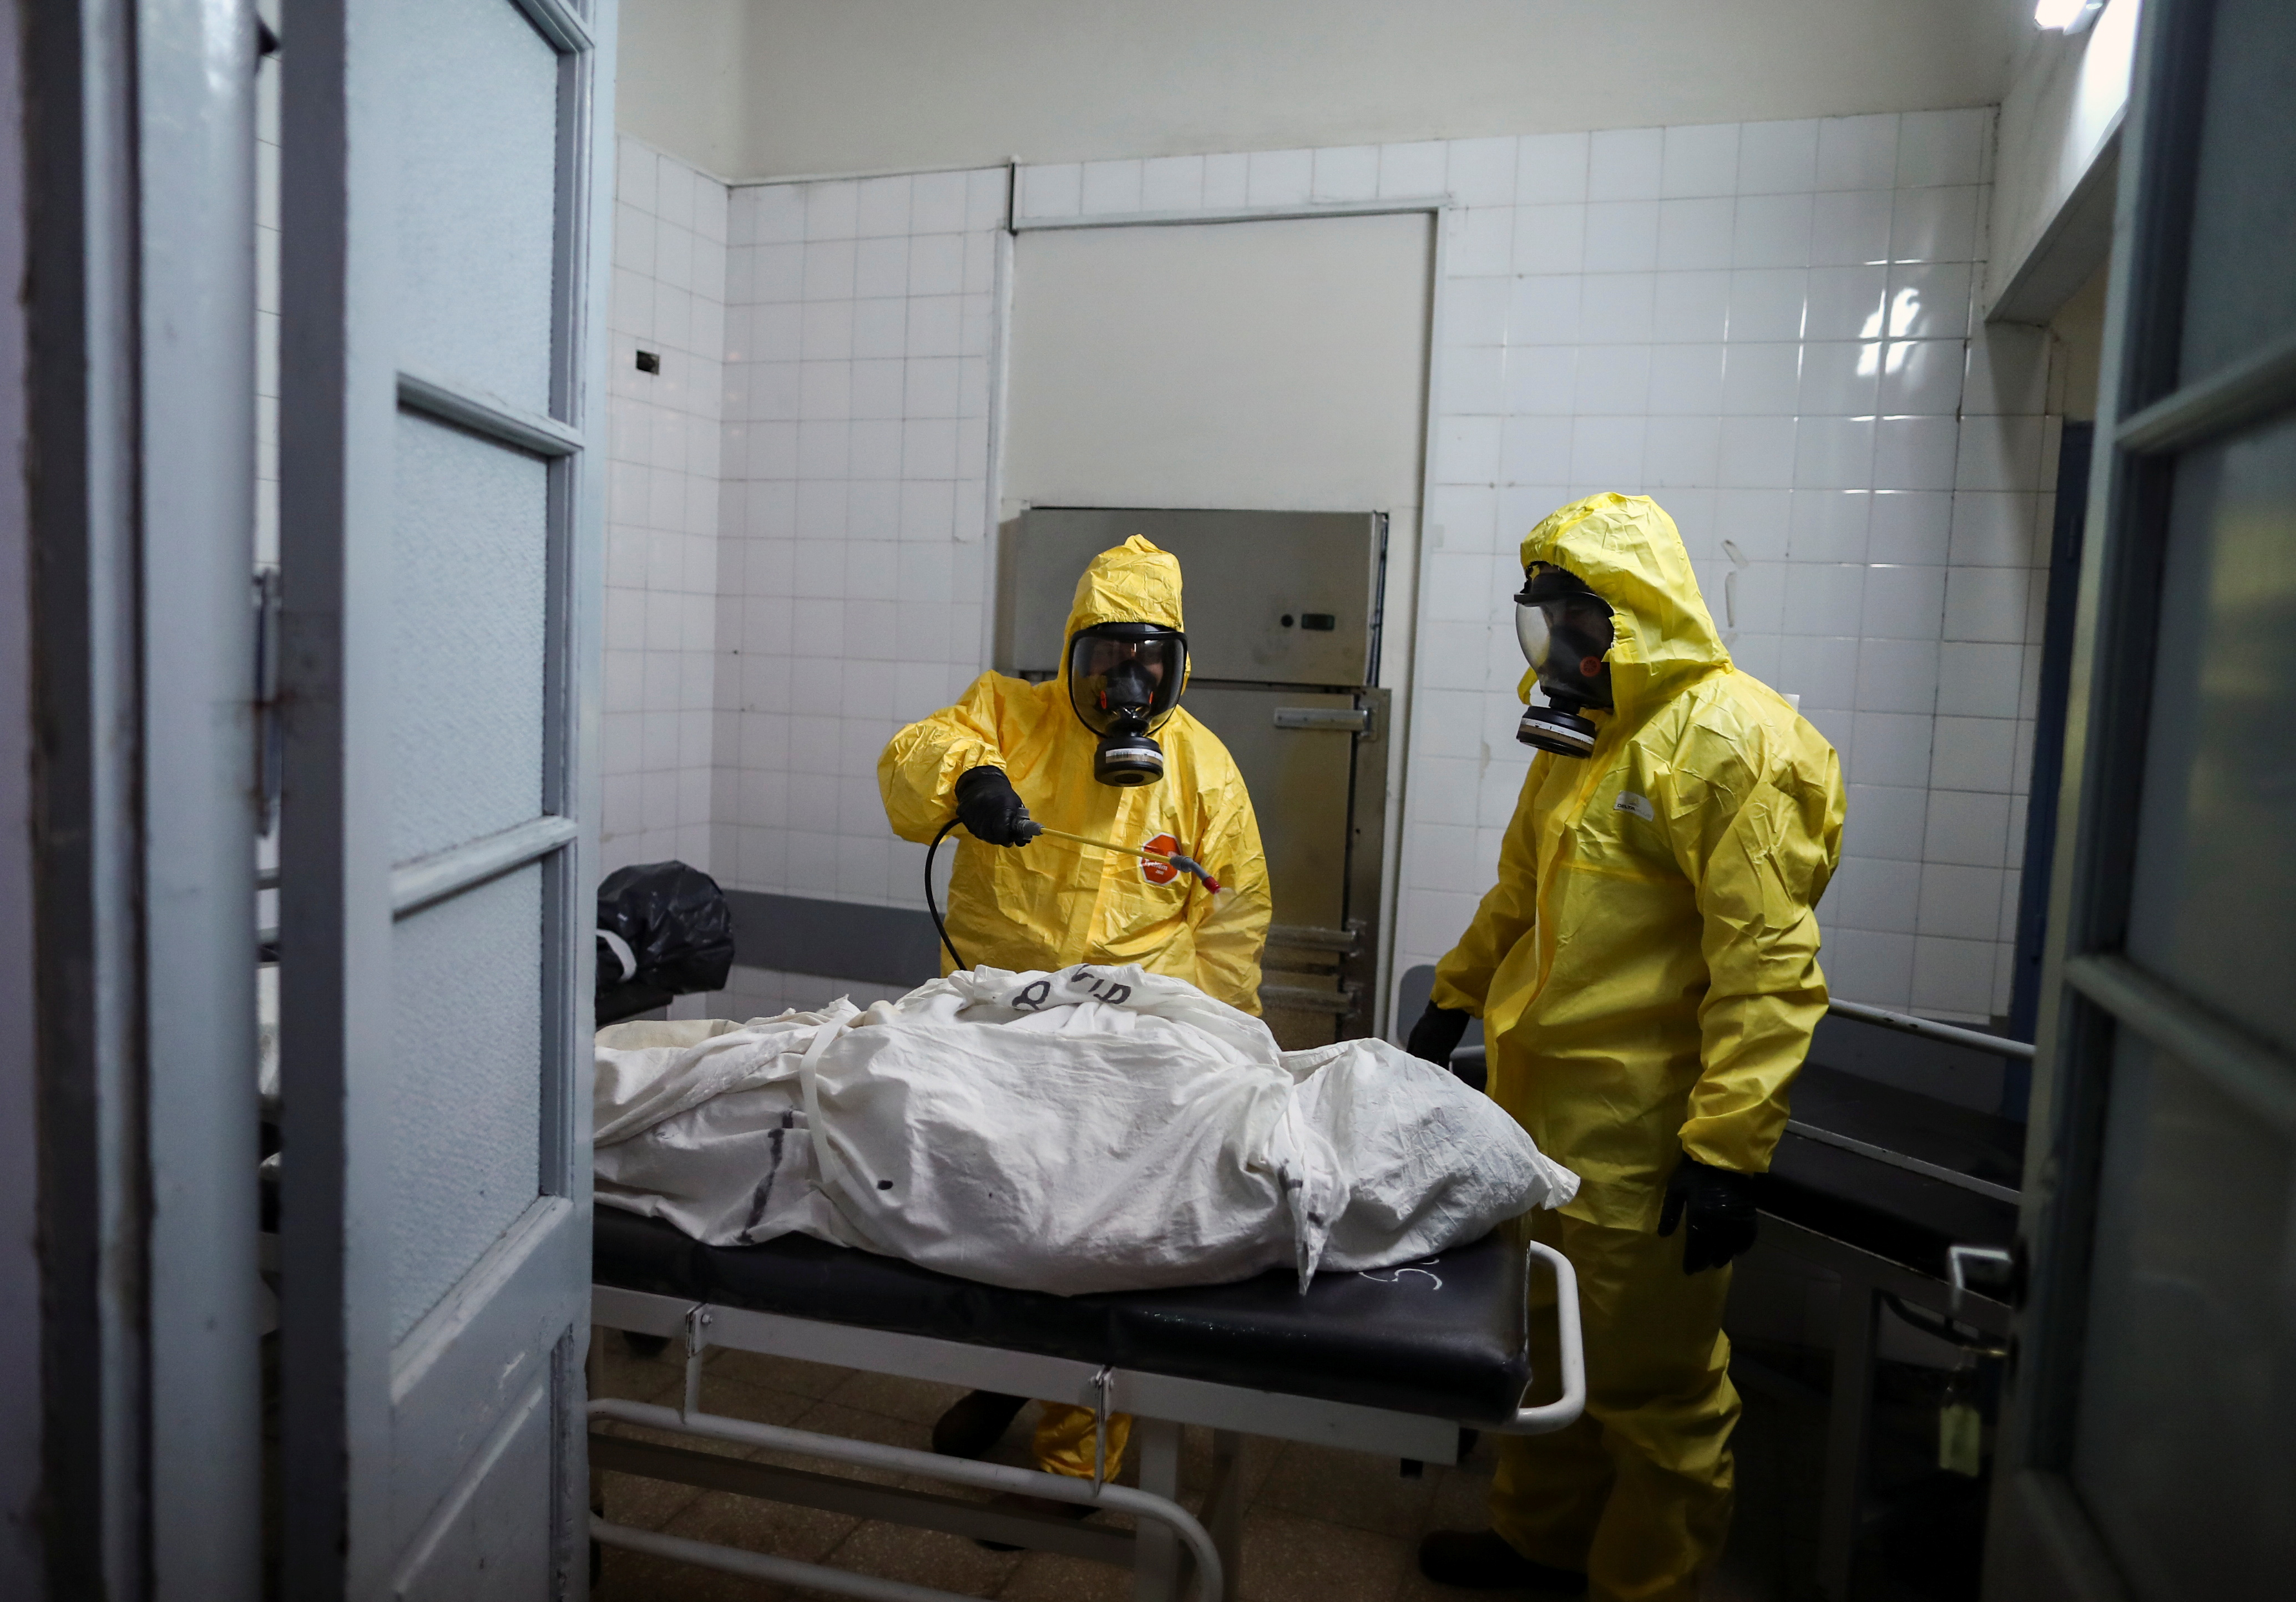 Gaston Rusichi and Oscar Oliva, members of the Department of High Risk Units (DUAR), disinfect a body of a person who died from the coronavirus disease (COVID-19) in a morgue, in Cordoba, Argentina, July 11, 2021. REUTERS/Agustin Marcarian